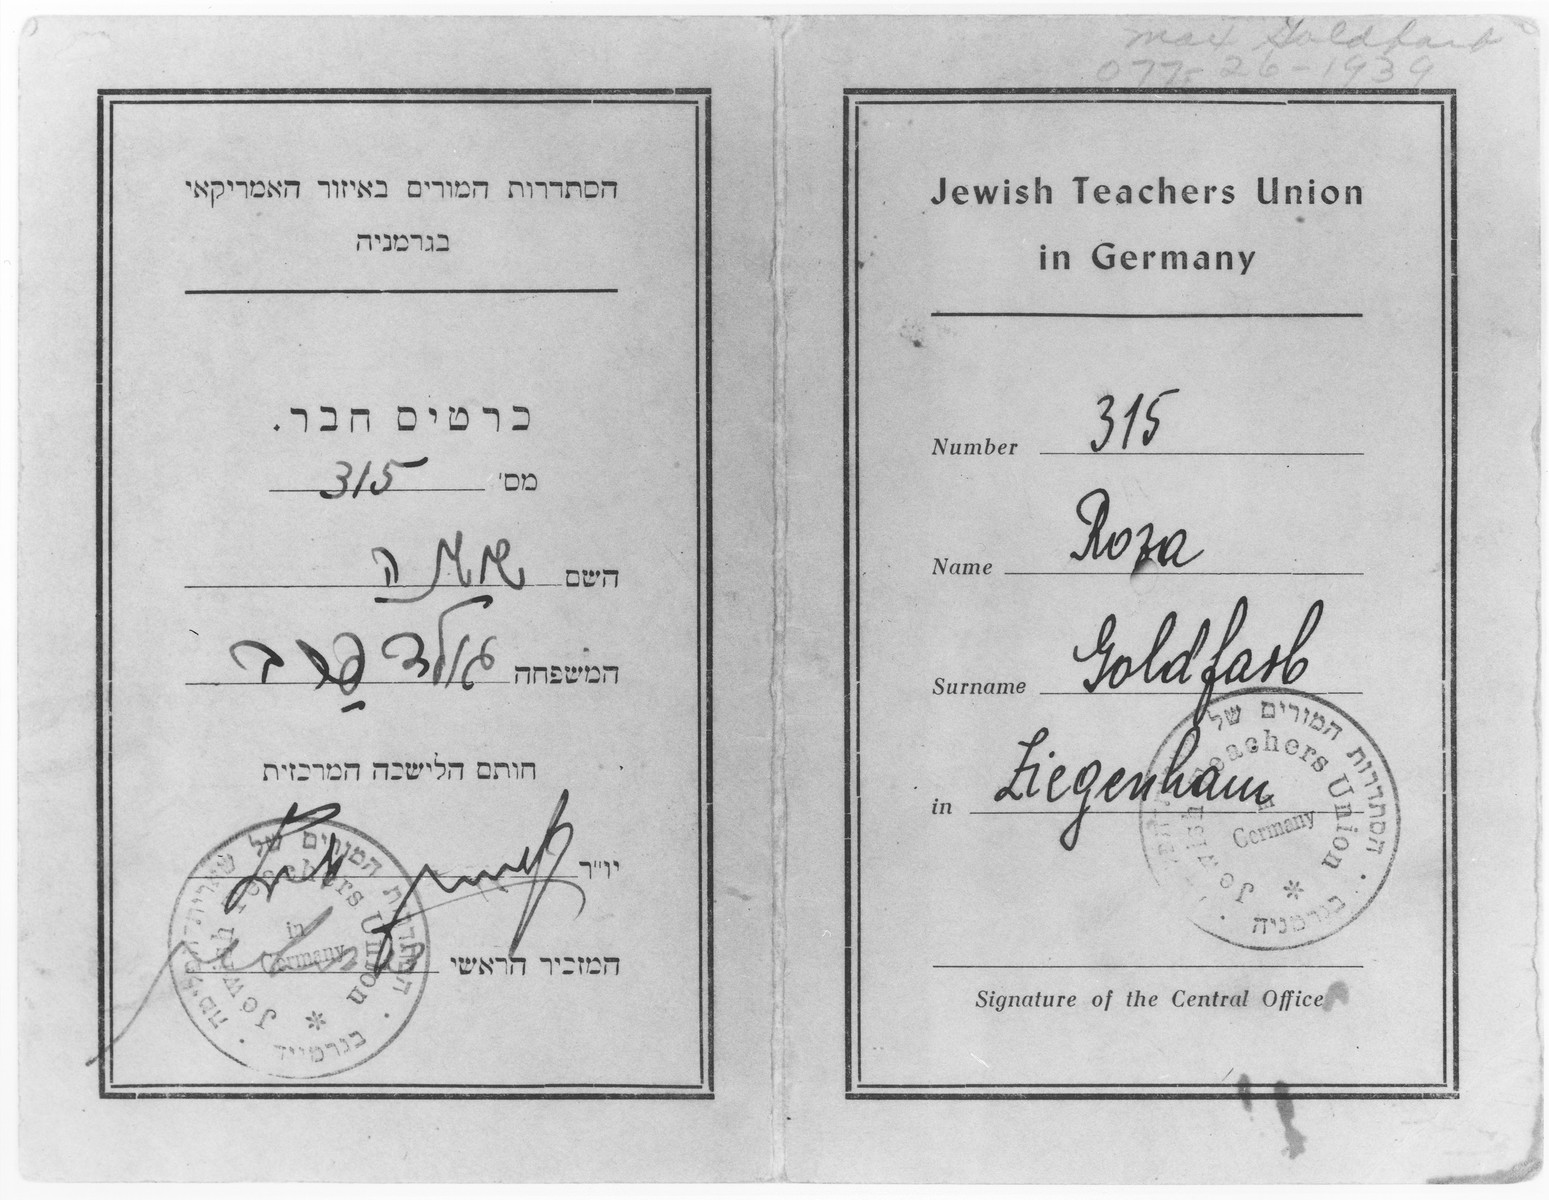 Membership card for Roza (Shoshana) Goldfarb in the Jewish Teachers Union in Germany.